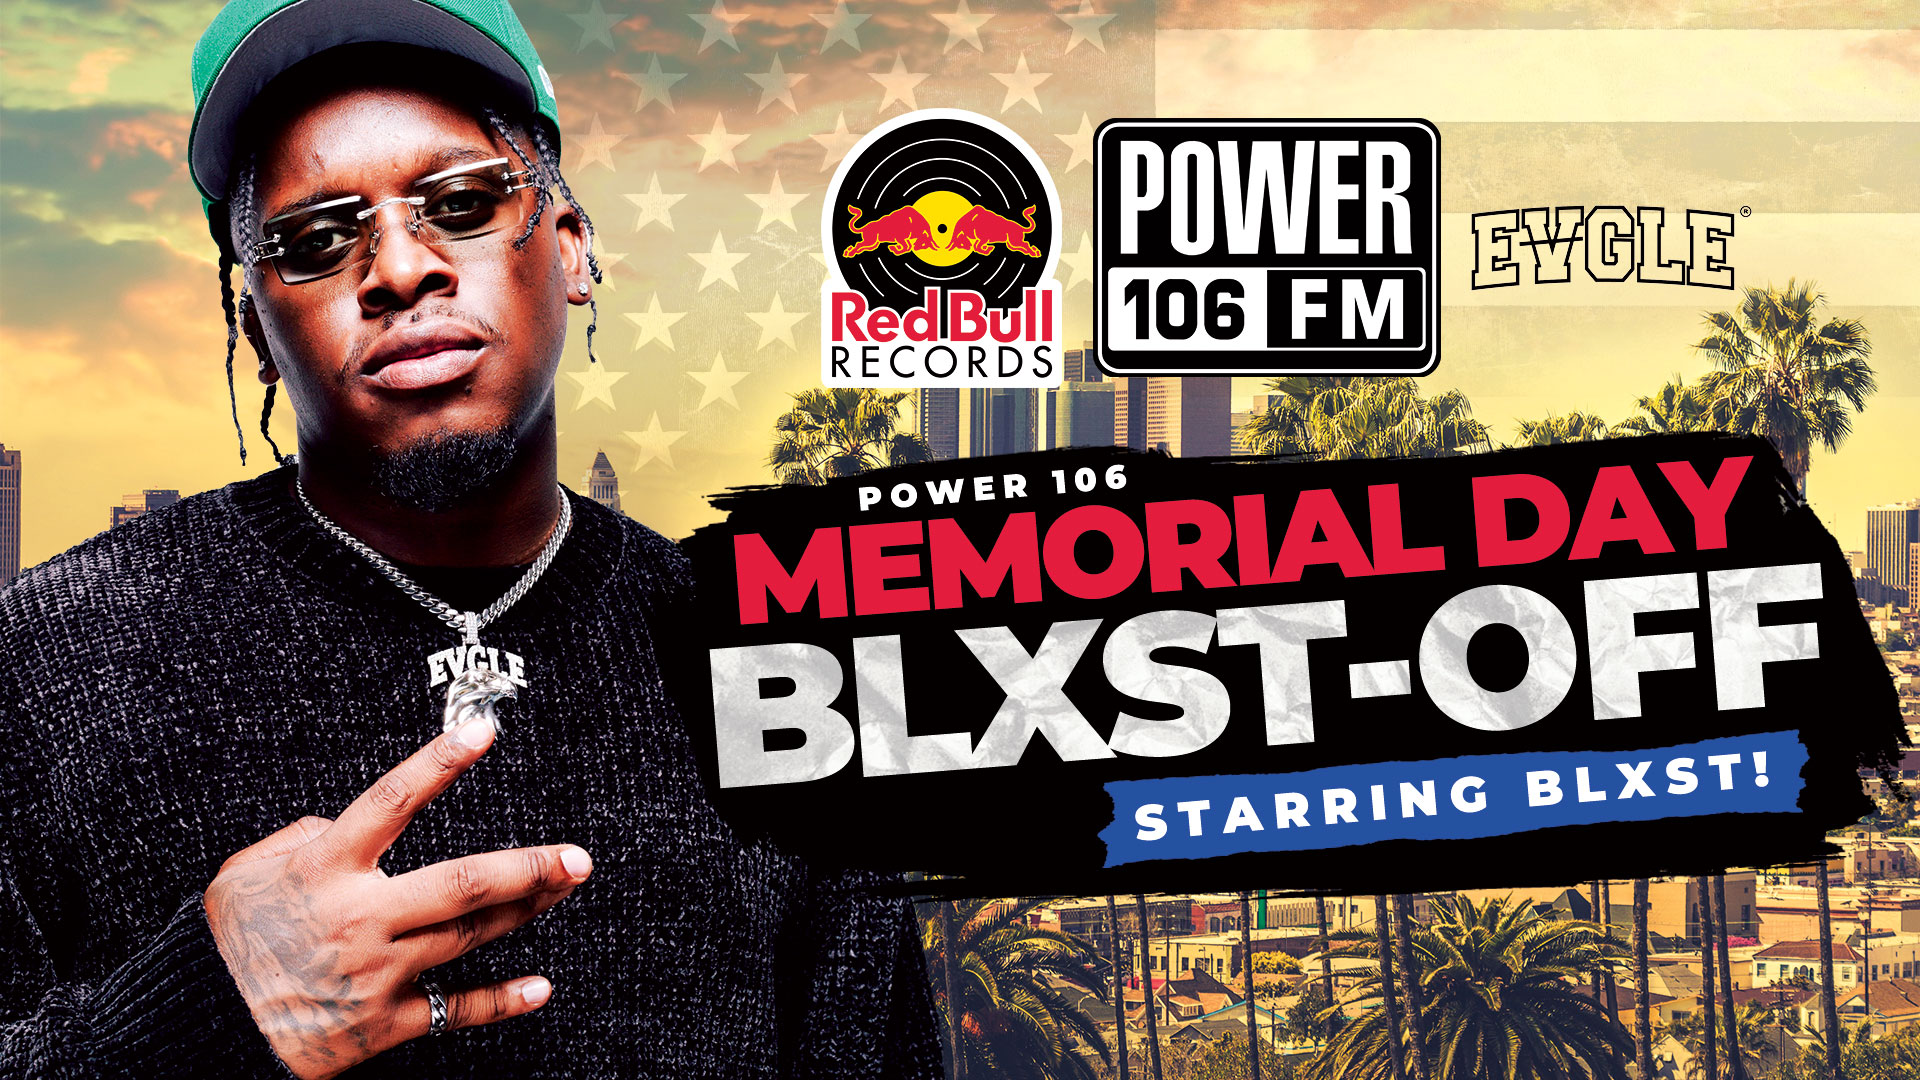 """Power 106 """"Memorial Day Blxst Off"""""""